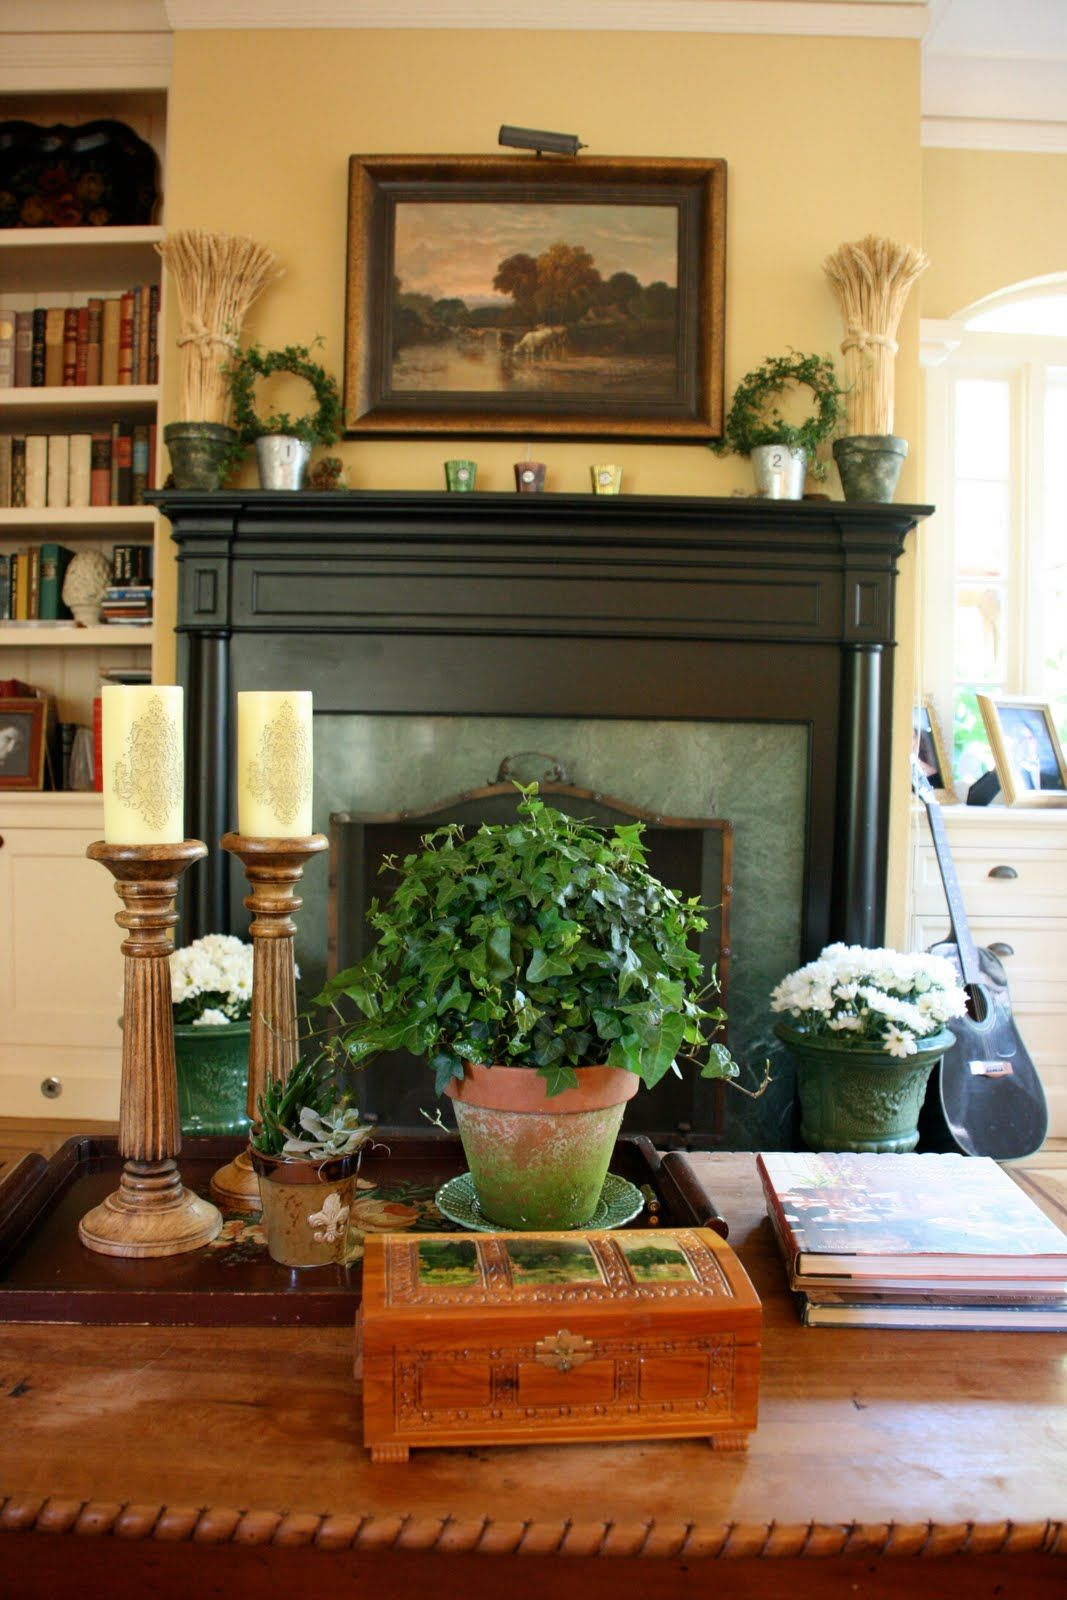 17 best images about mantel ideas on pinterest fireplaces fireplace mantels and lamps mantel design - Mantel Design Ideas